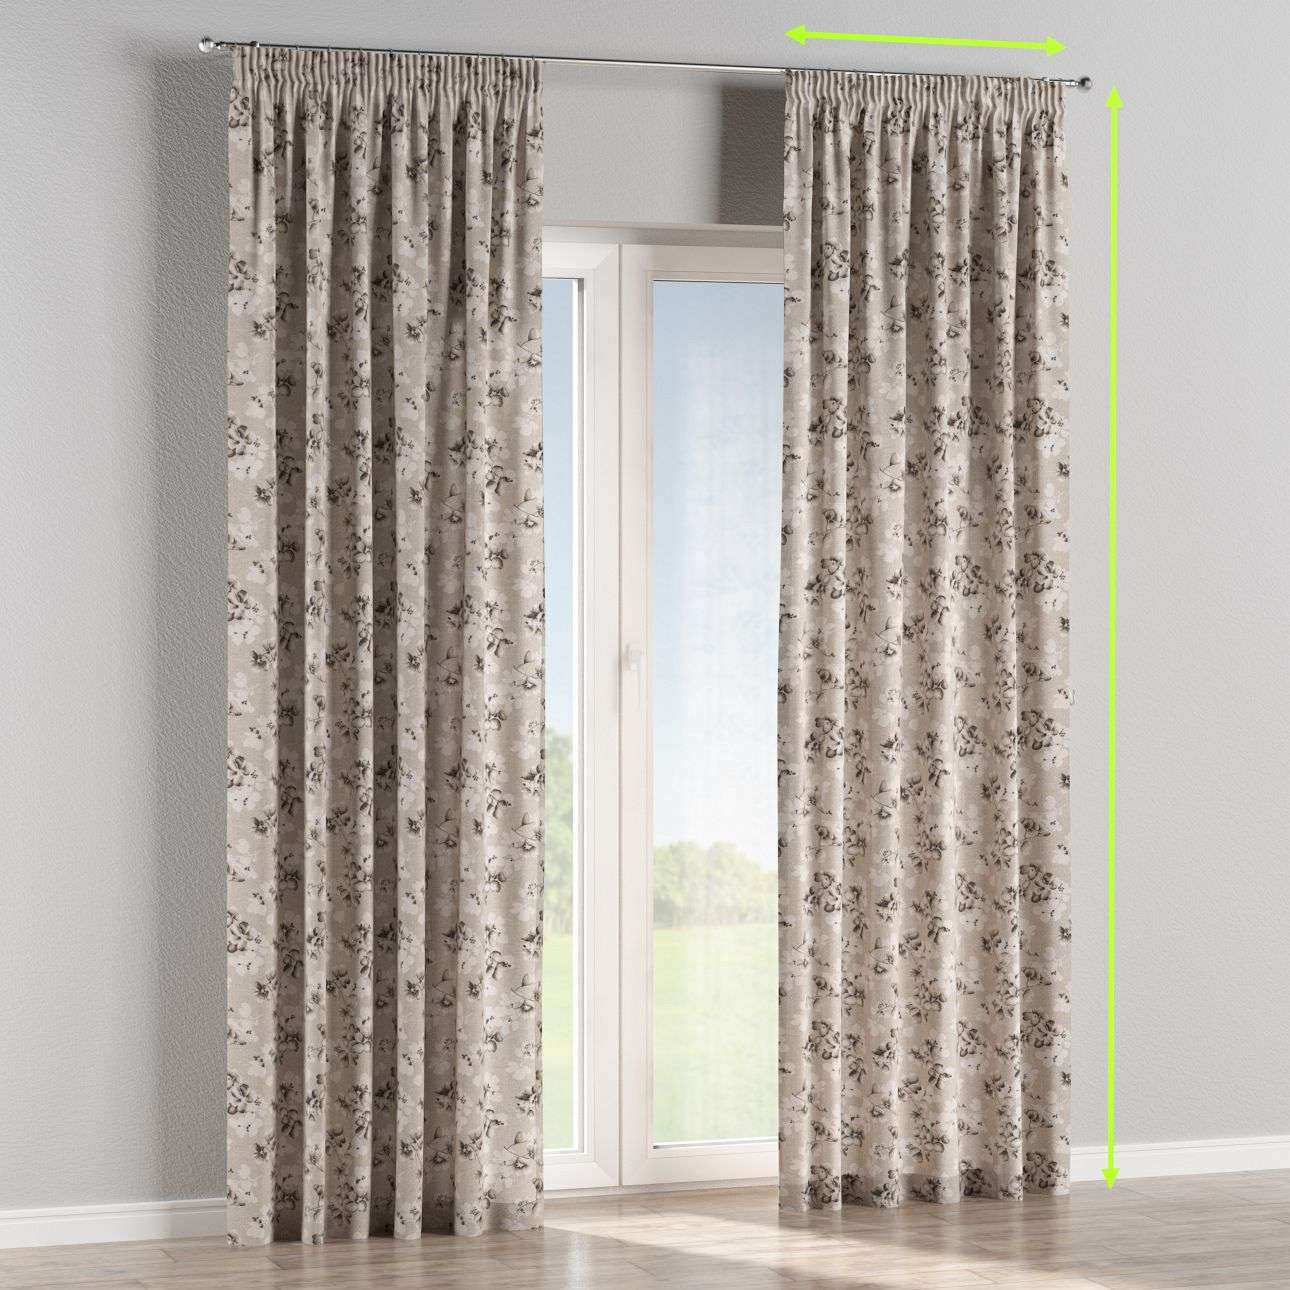 Pencil pleat lined curtains in collection Rustica, fabric: 138-14